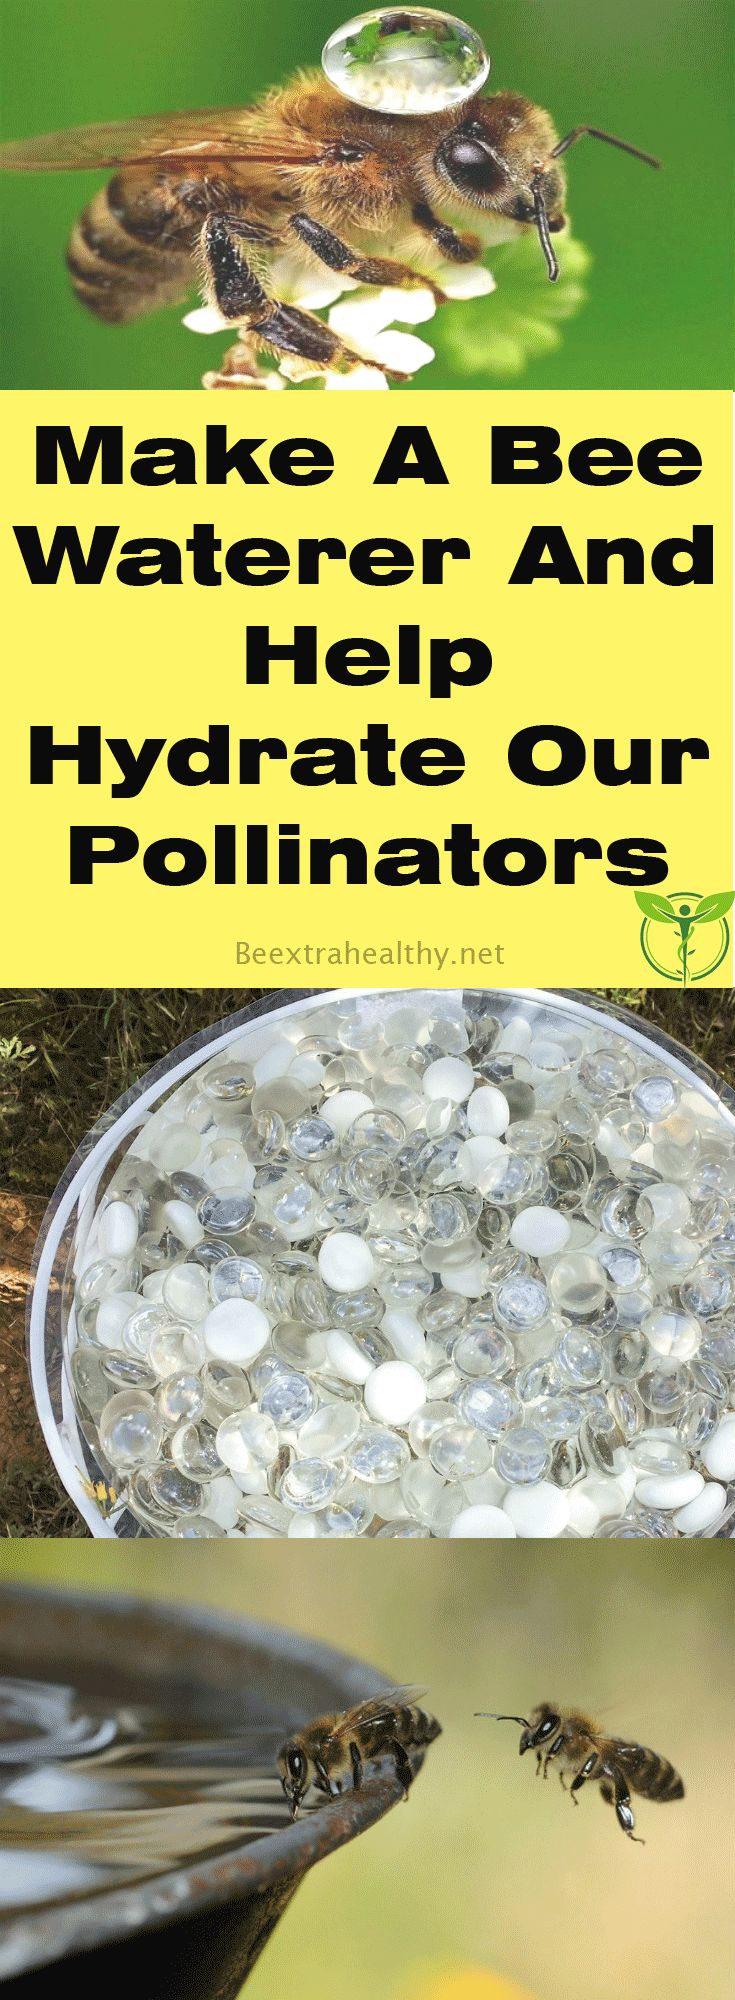 Make A Bee Waterer And Help Hydrate Our Pollinators - Honey bees tend to no less than 2,000 flowers in a day, with tiny wings beating 10,000 times in one minute, carrying dust, and drastically helping our food supply.